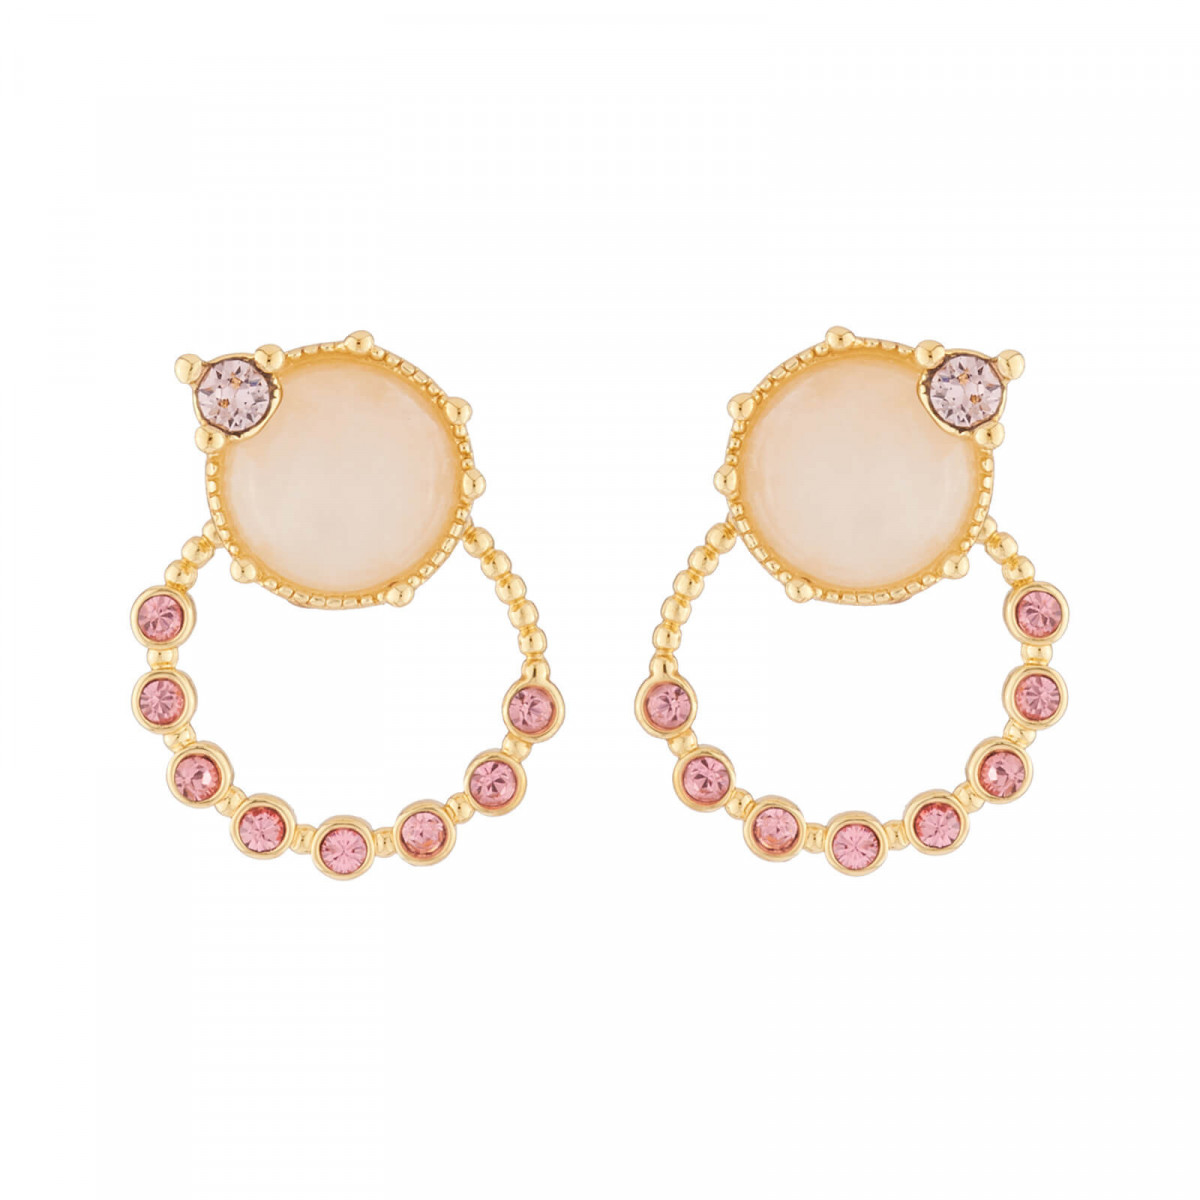 7b575be0d97 Adjust these stud earrings as you desire  take the ring off to adorn your  ears a with unique stones